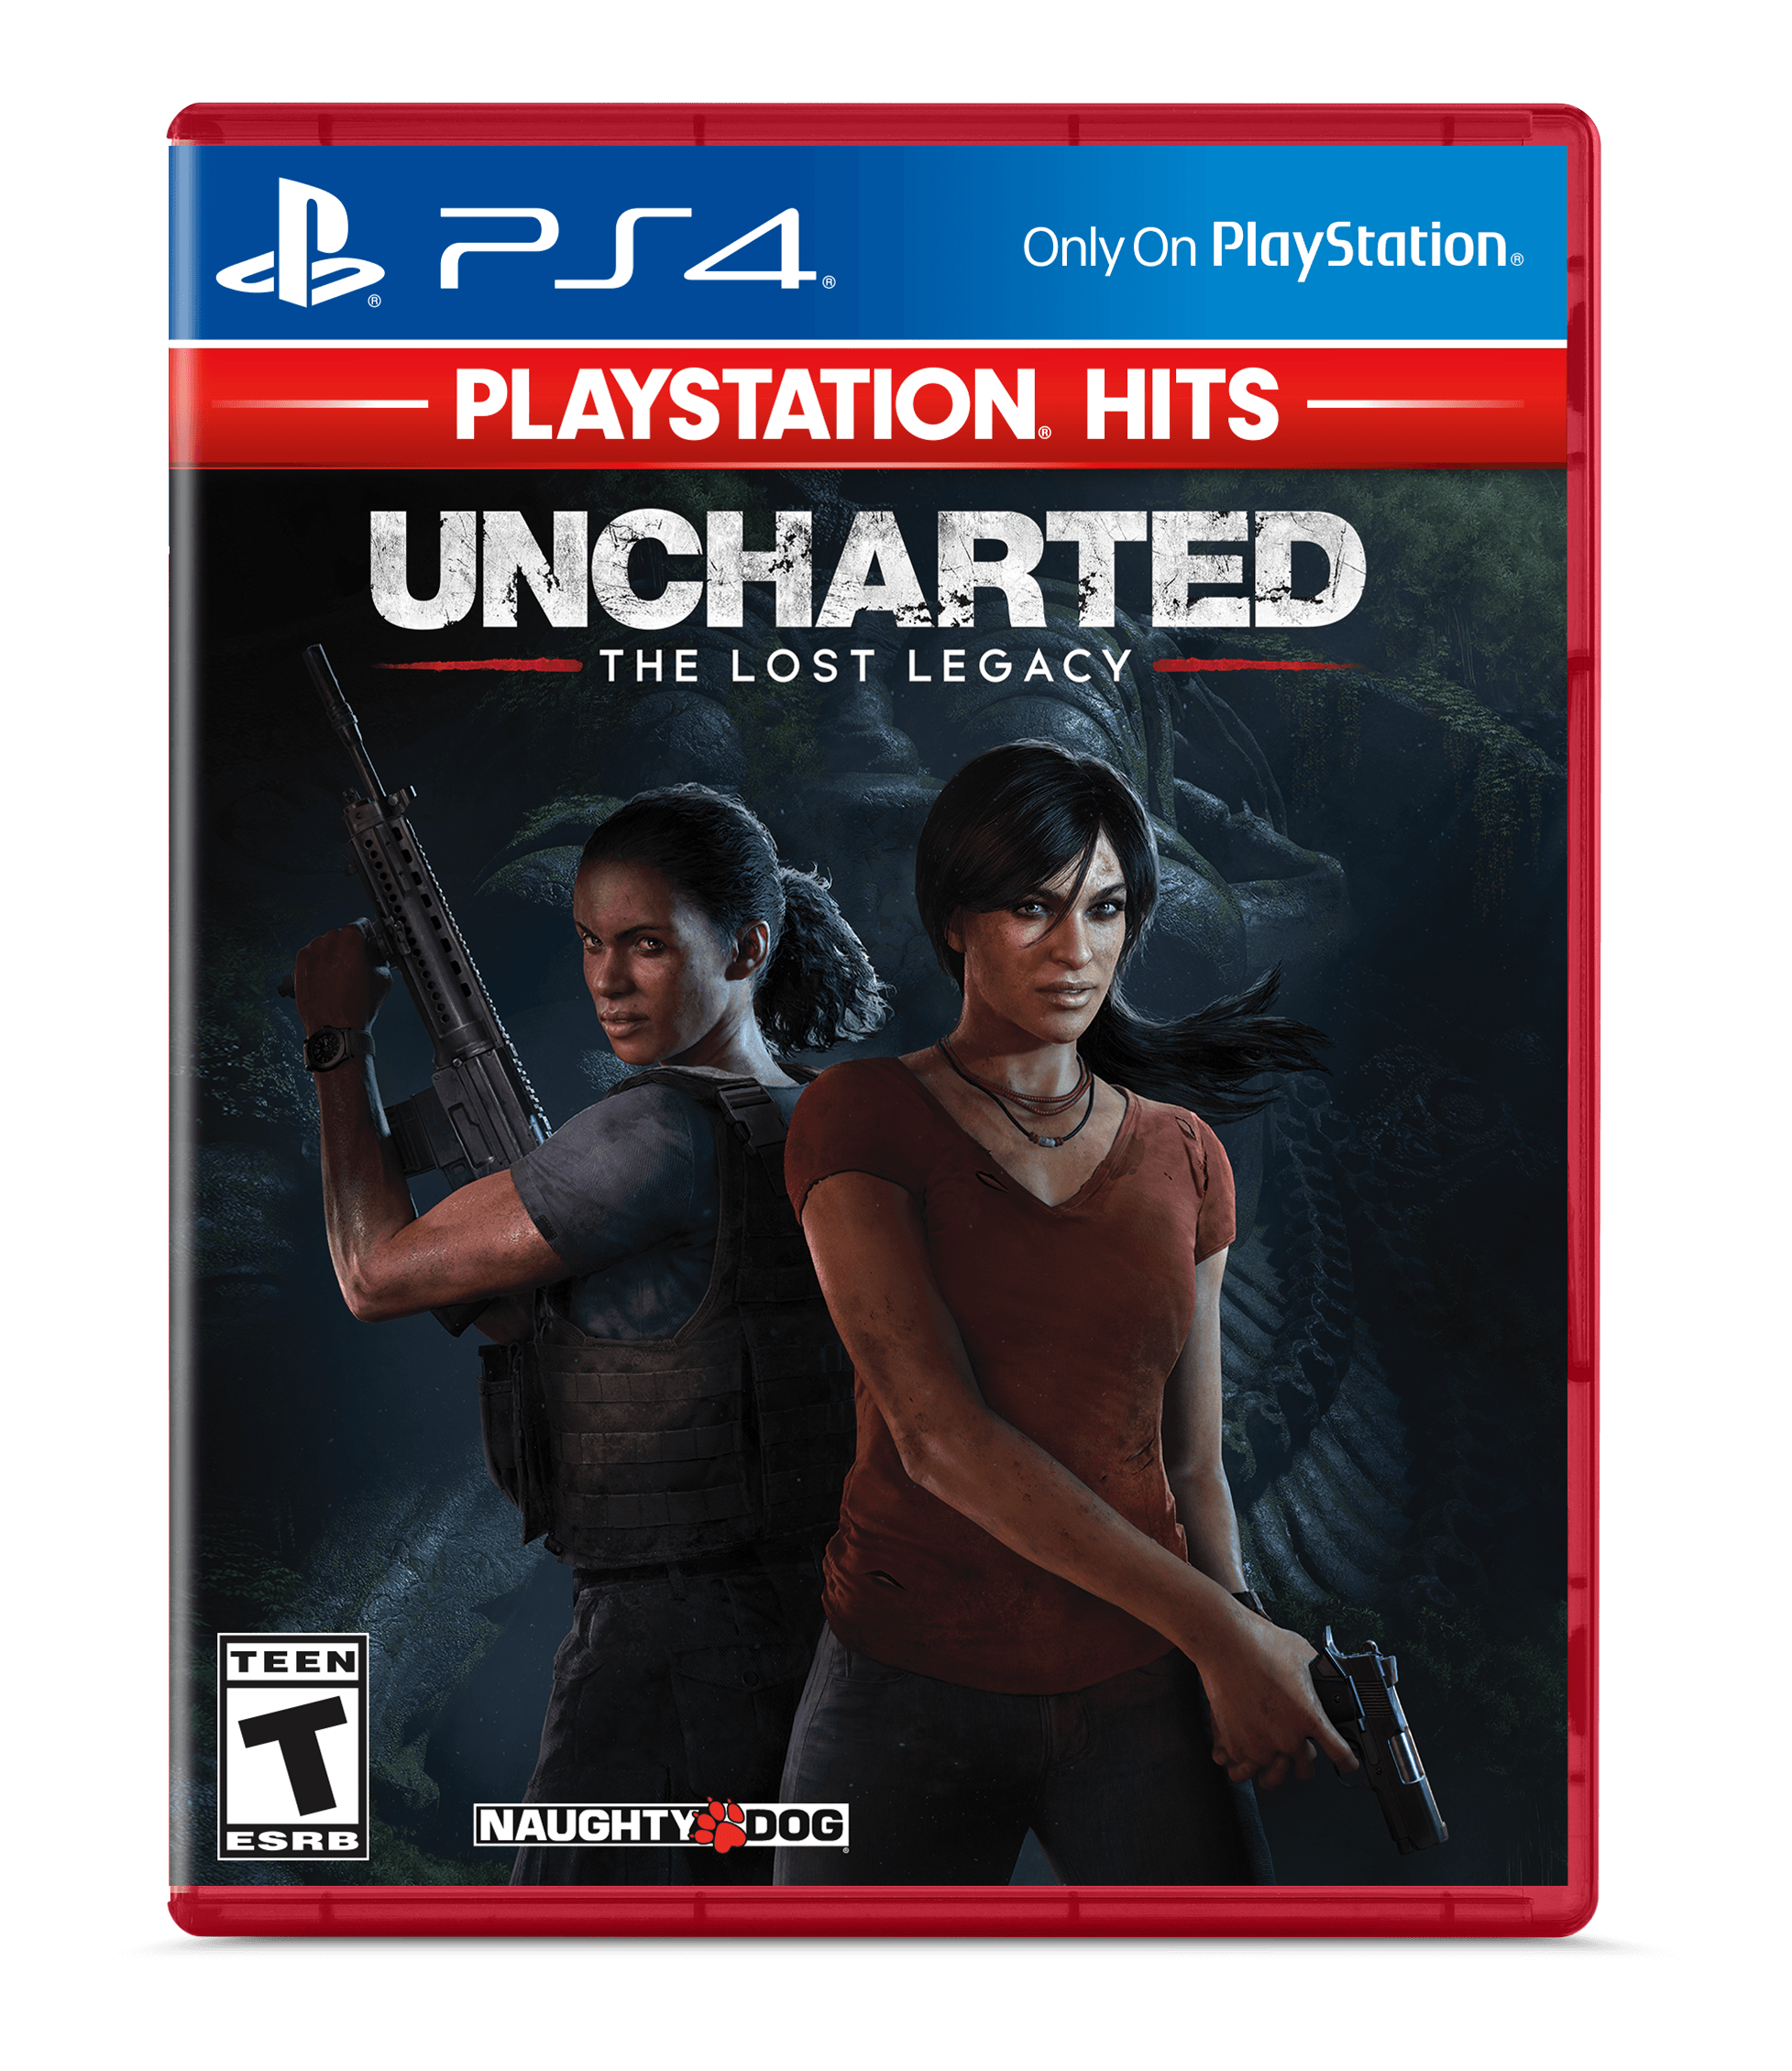 UNCHARTED: The Lost Legacy ? PlayStation Hits, Sony, PlayStation 4, 711719534303